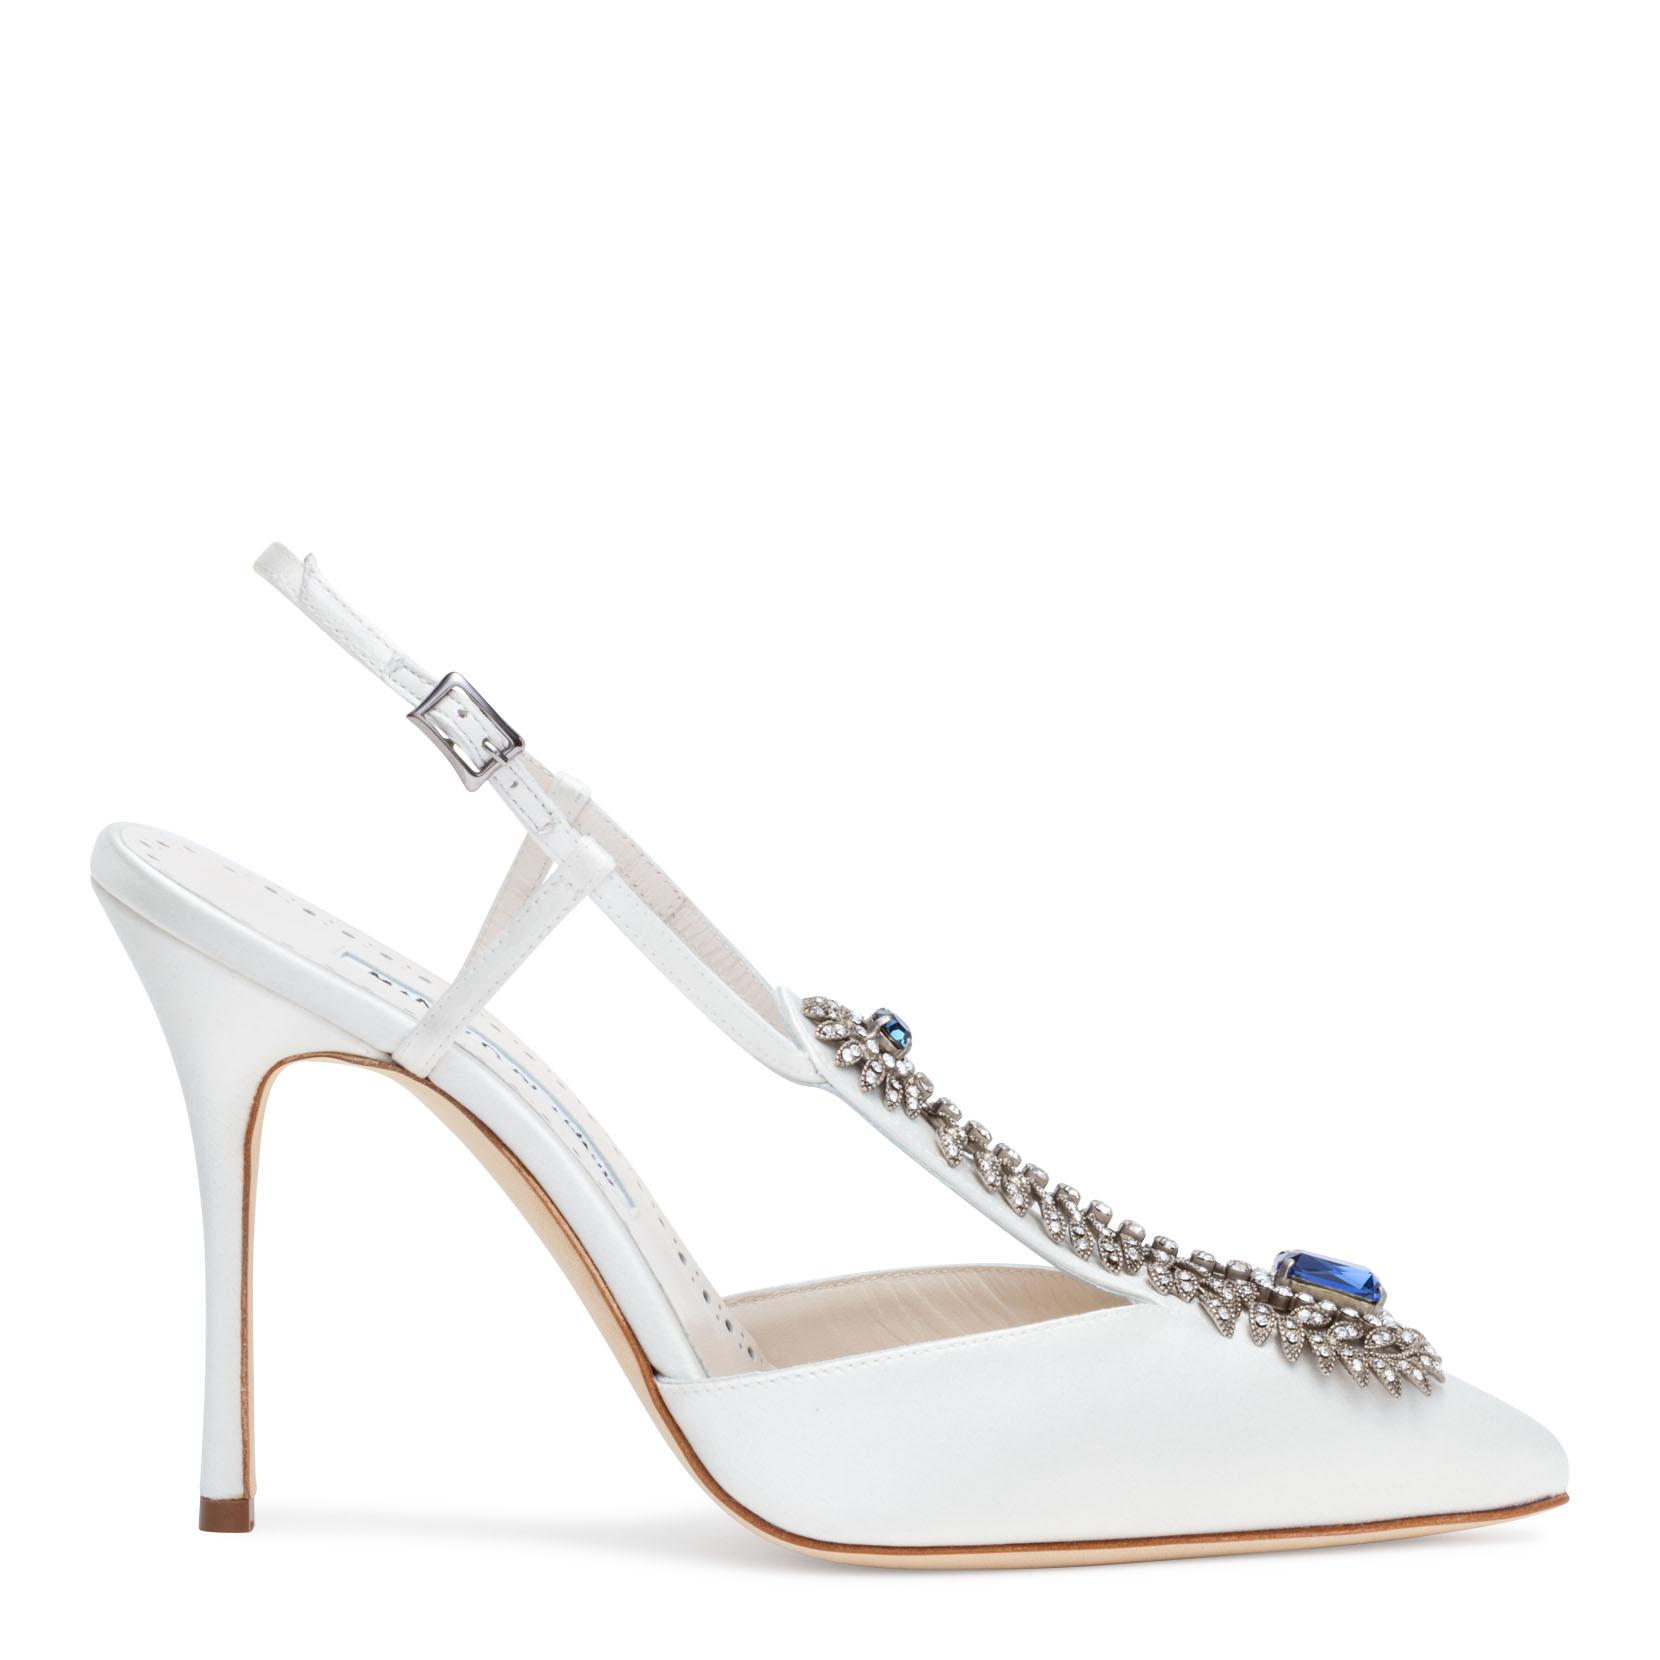 Jamala 105 Ivory Satin Pumps Manolo Blahnik Free Shipping Outlet Limited Edition For Sale Cheap Sale Classic Free Shipping Cheapest Price 7KdfpzH1T